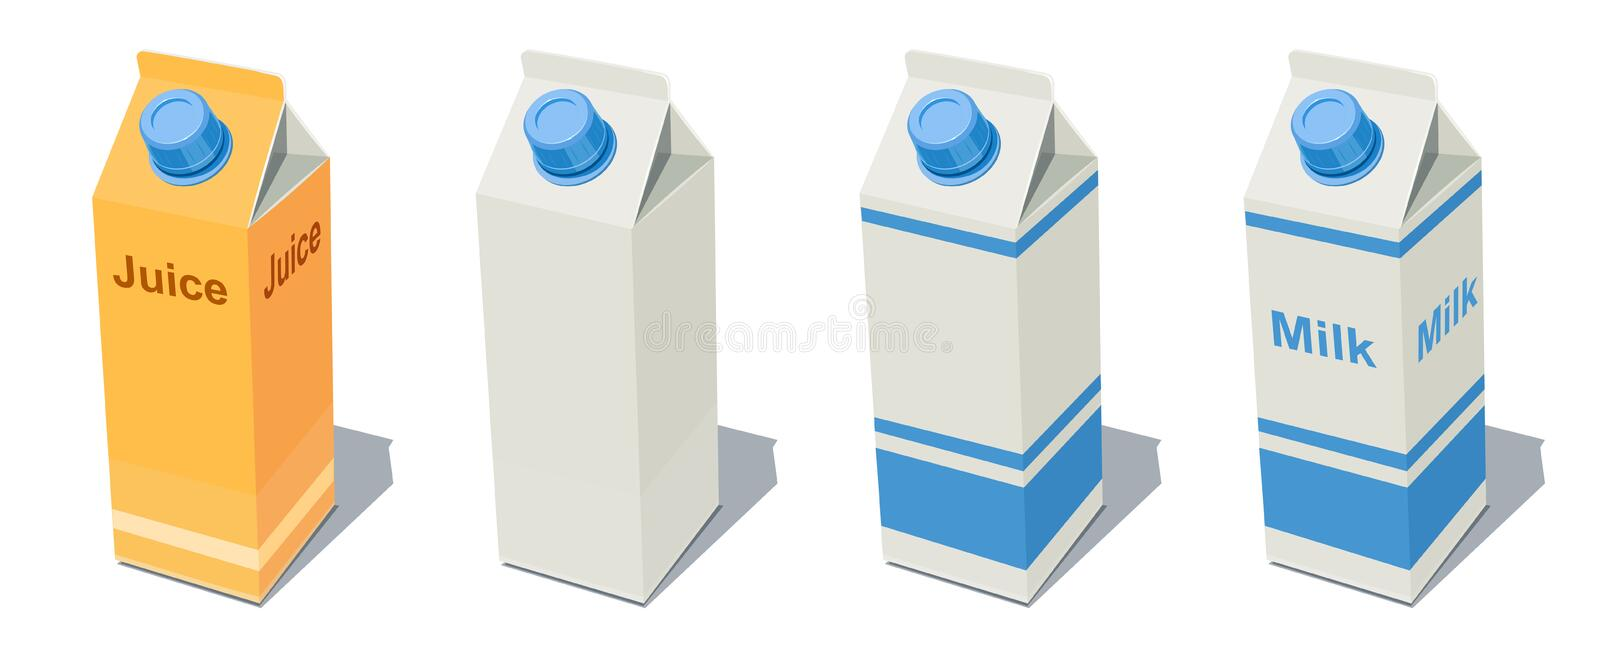 Milk Pack and Juice. Fruit beverage bottle. Milky product. Healthy food drink paper box. Blank Container for organic meal products. Vector illustration. White stock illustration